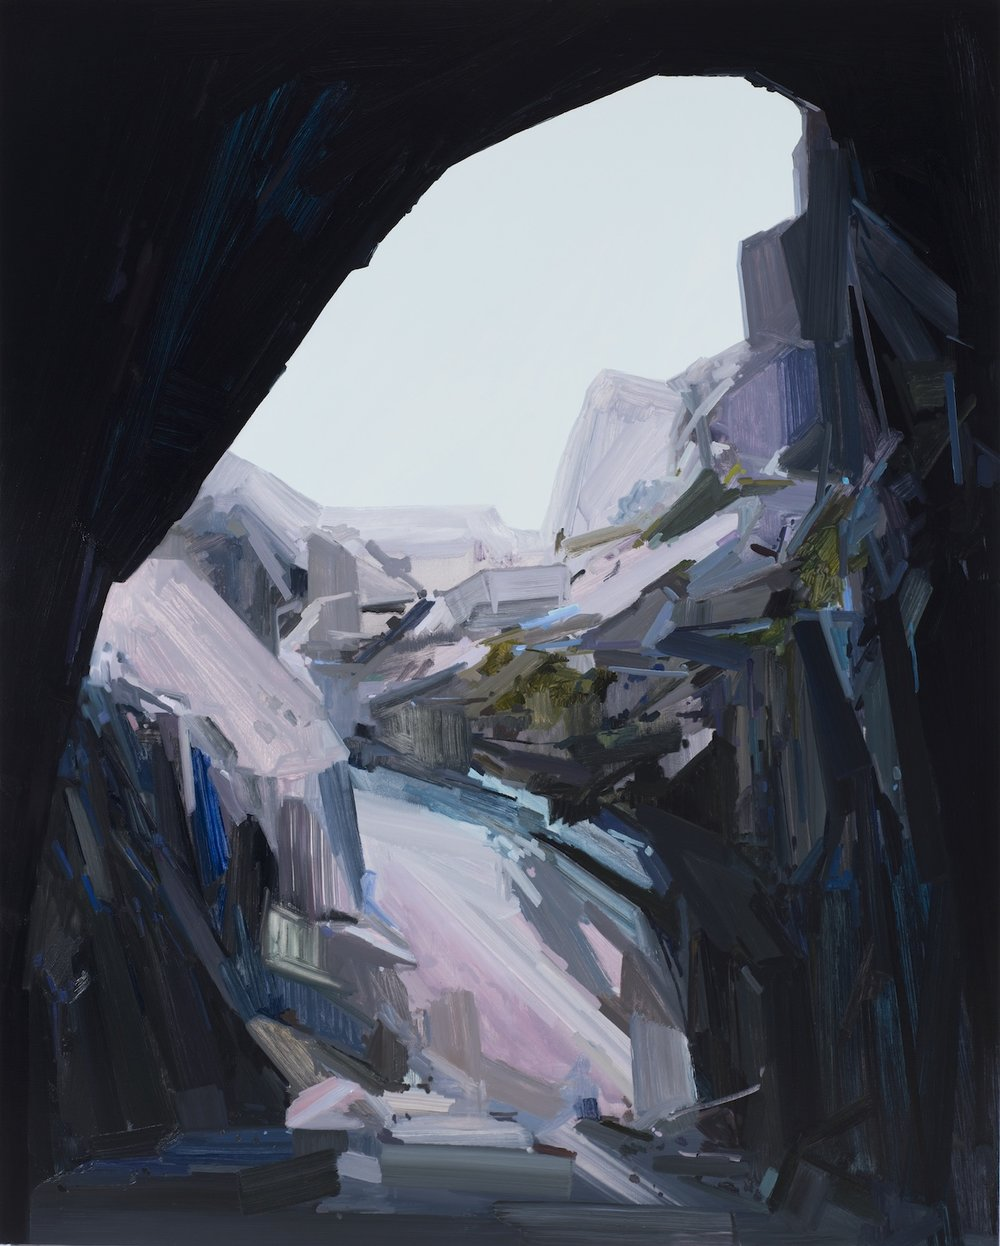 Cave, 2015, Oil on canvas, 96 x 78""